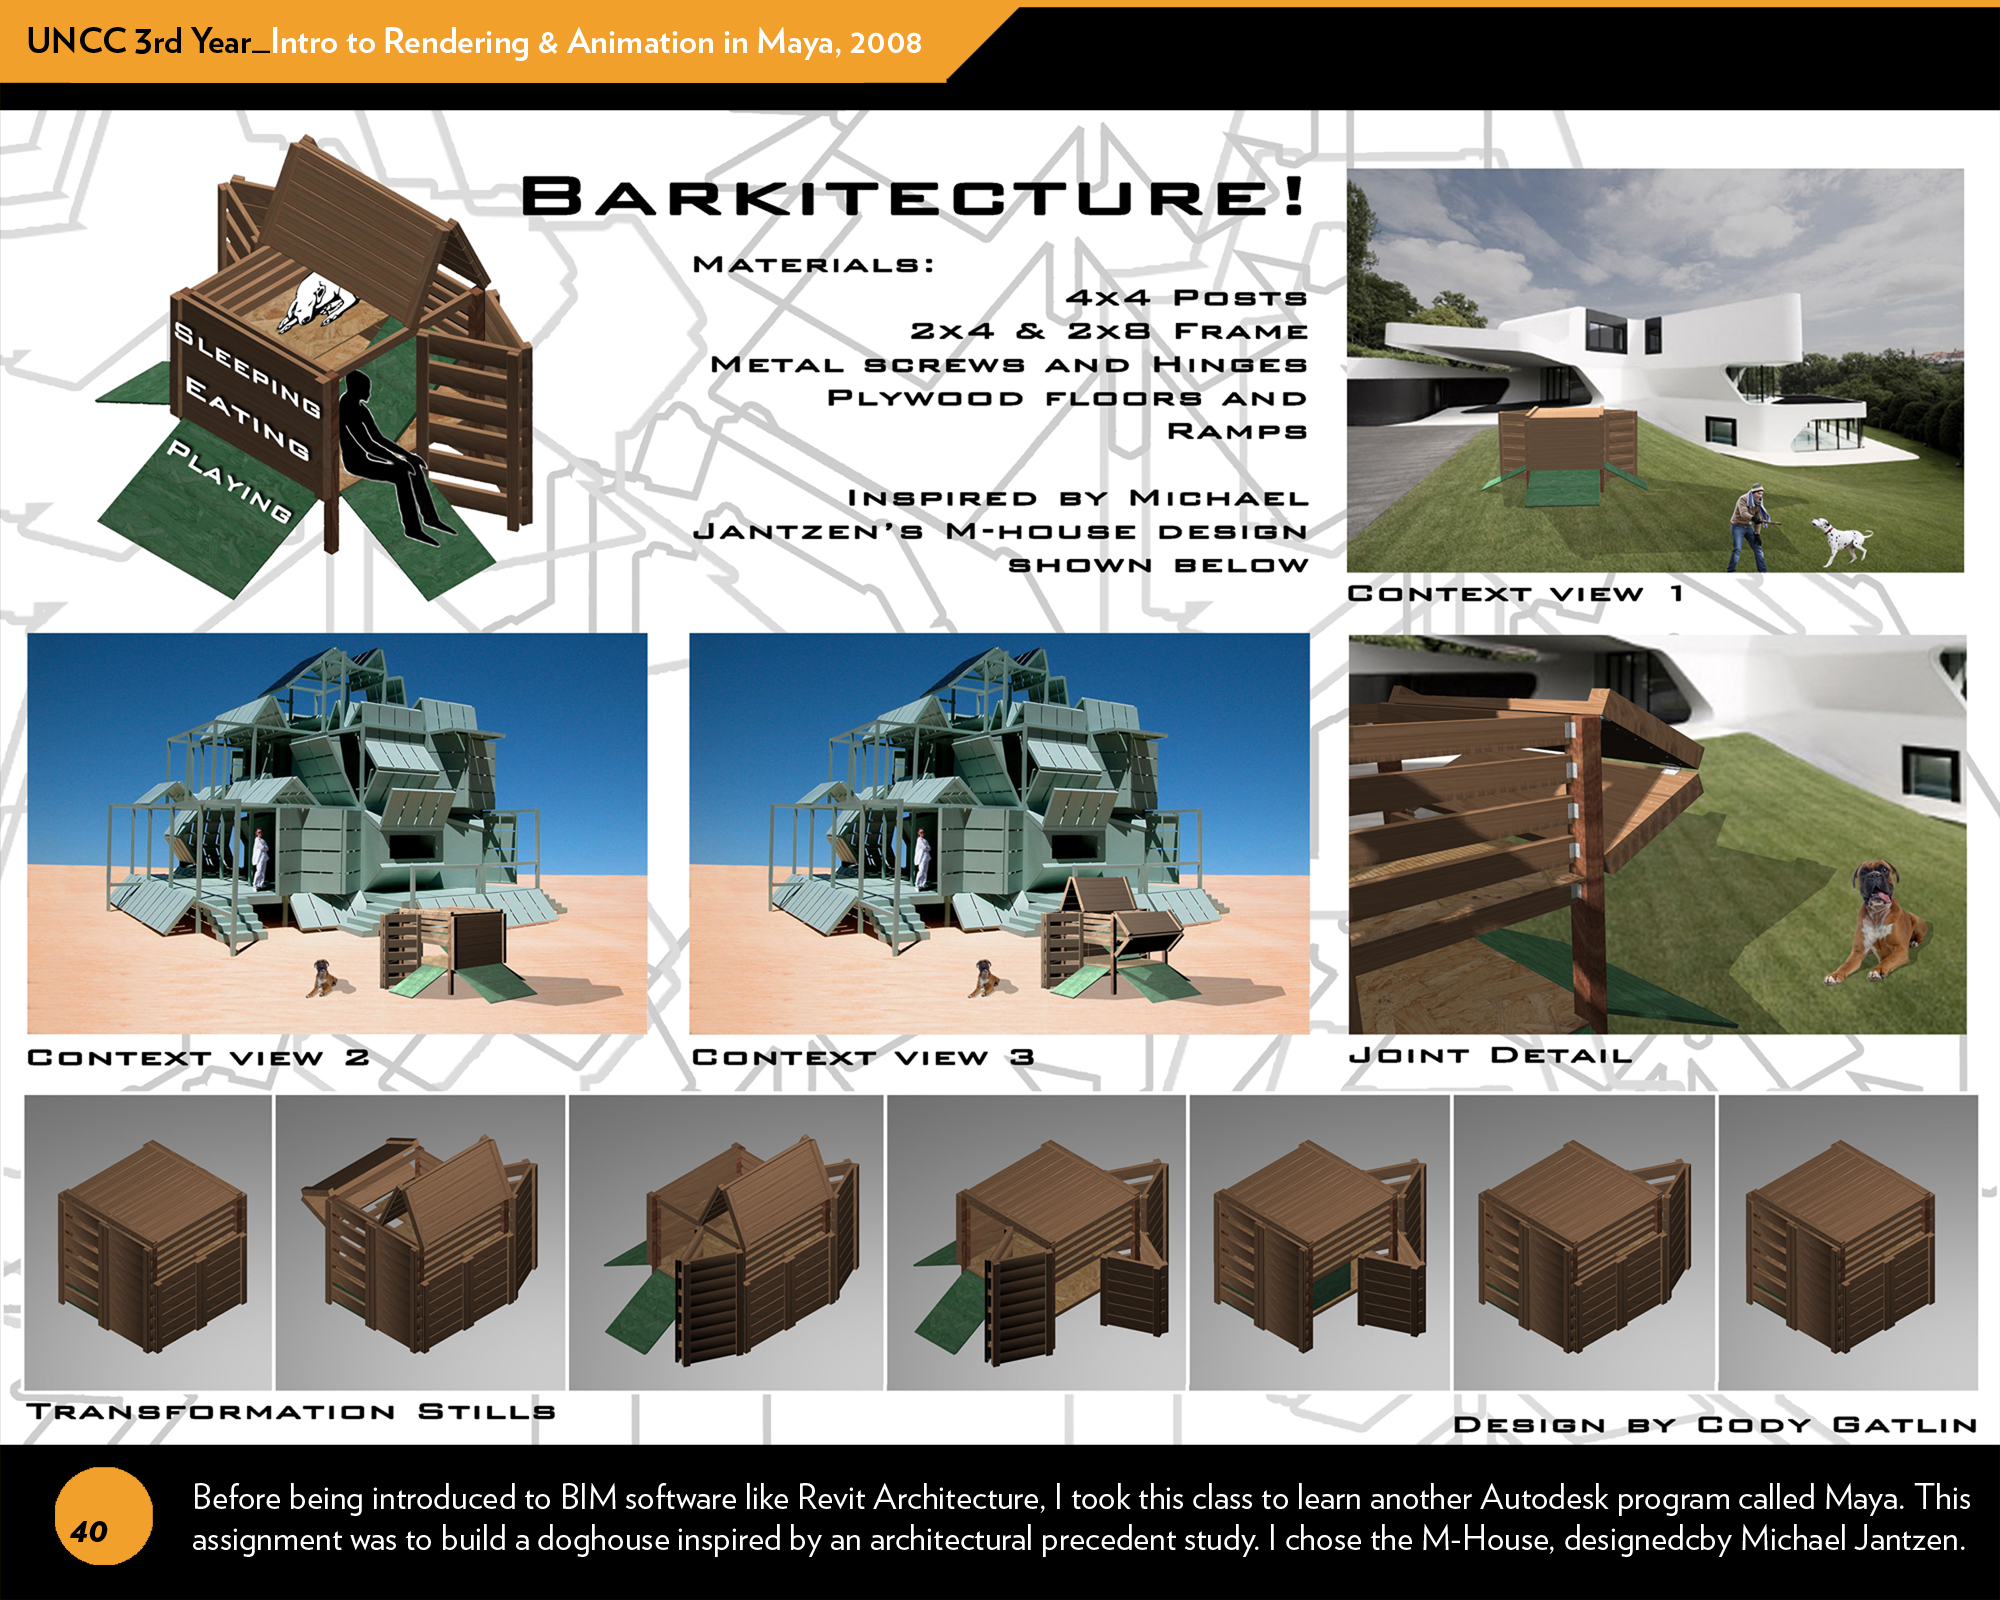 DOGHOUSE DESIGN_BARKITECTURE